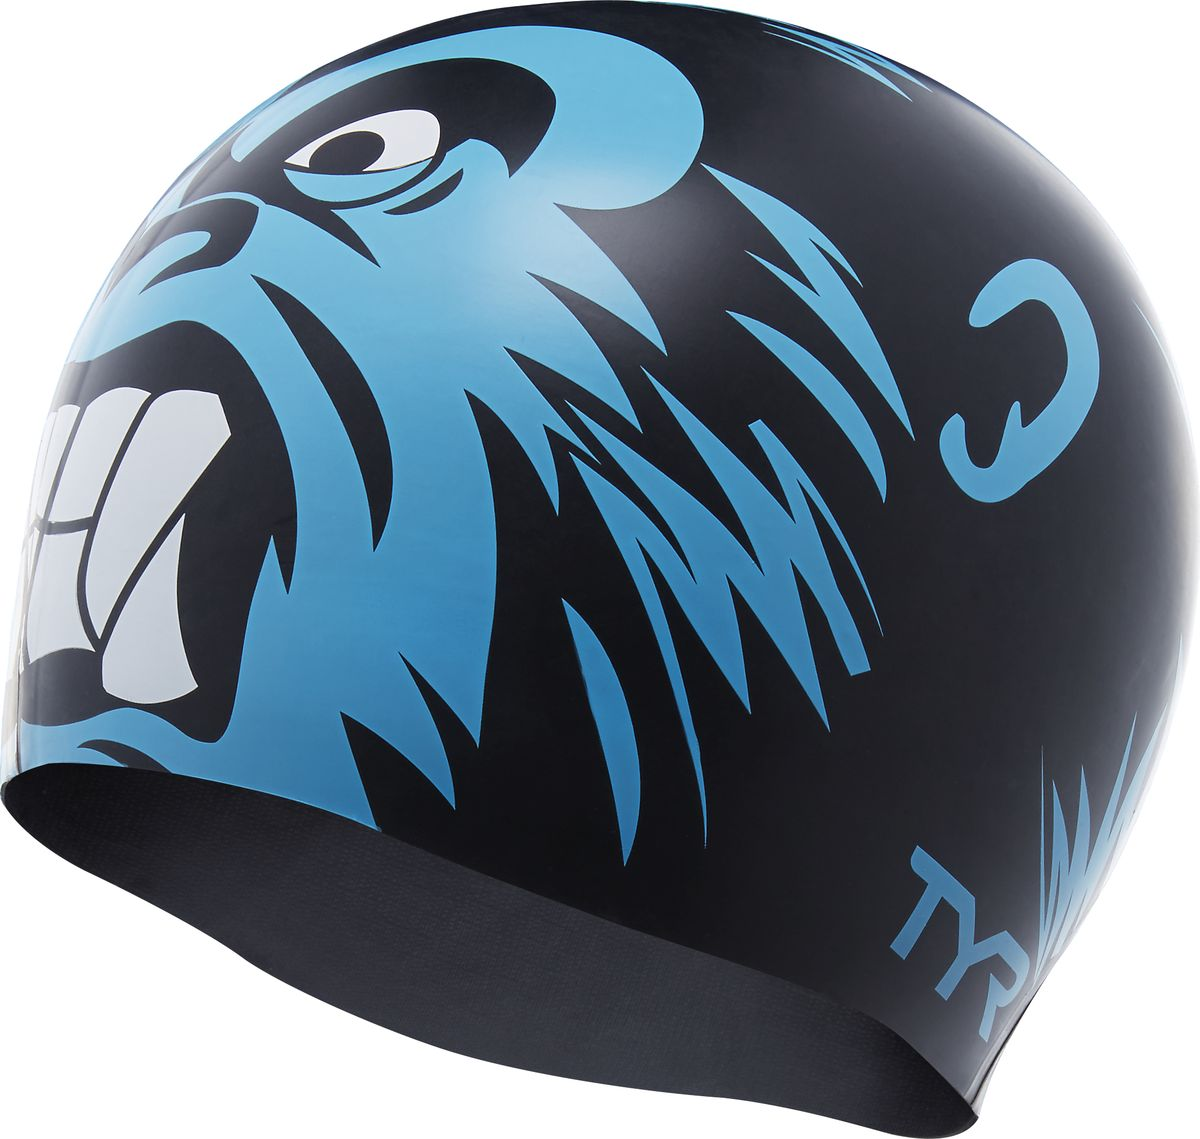 Шапочка для плавания Tyr Gorilla King Swim Cap, цвет: голубой, черный. LCSKNG кольца tyr dive rings цвет ассорти lstsrng